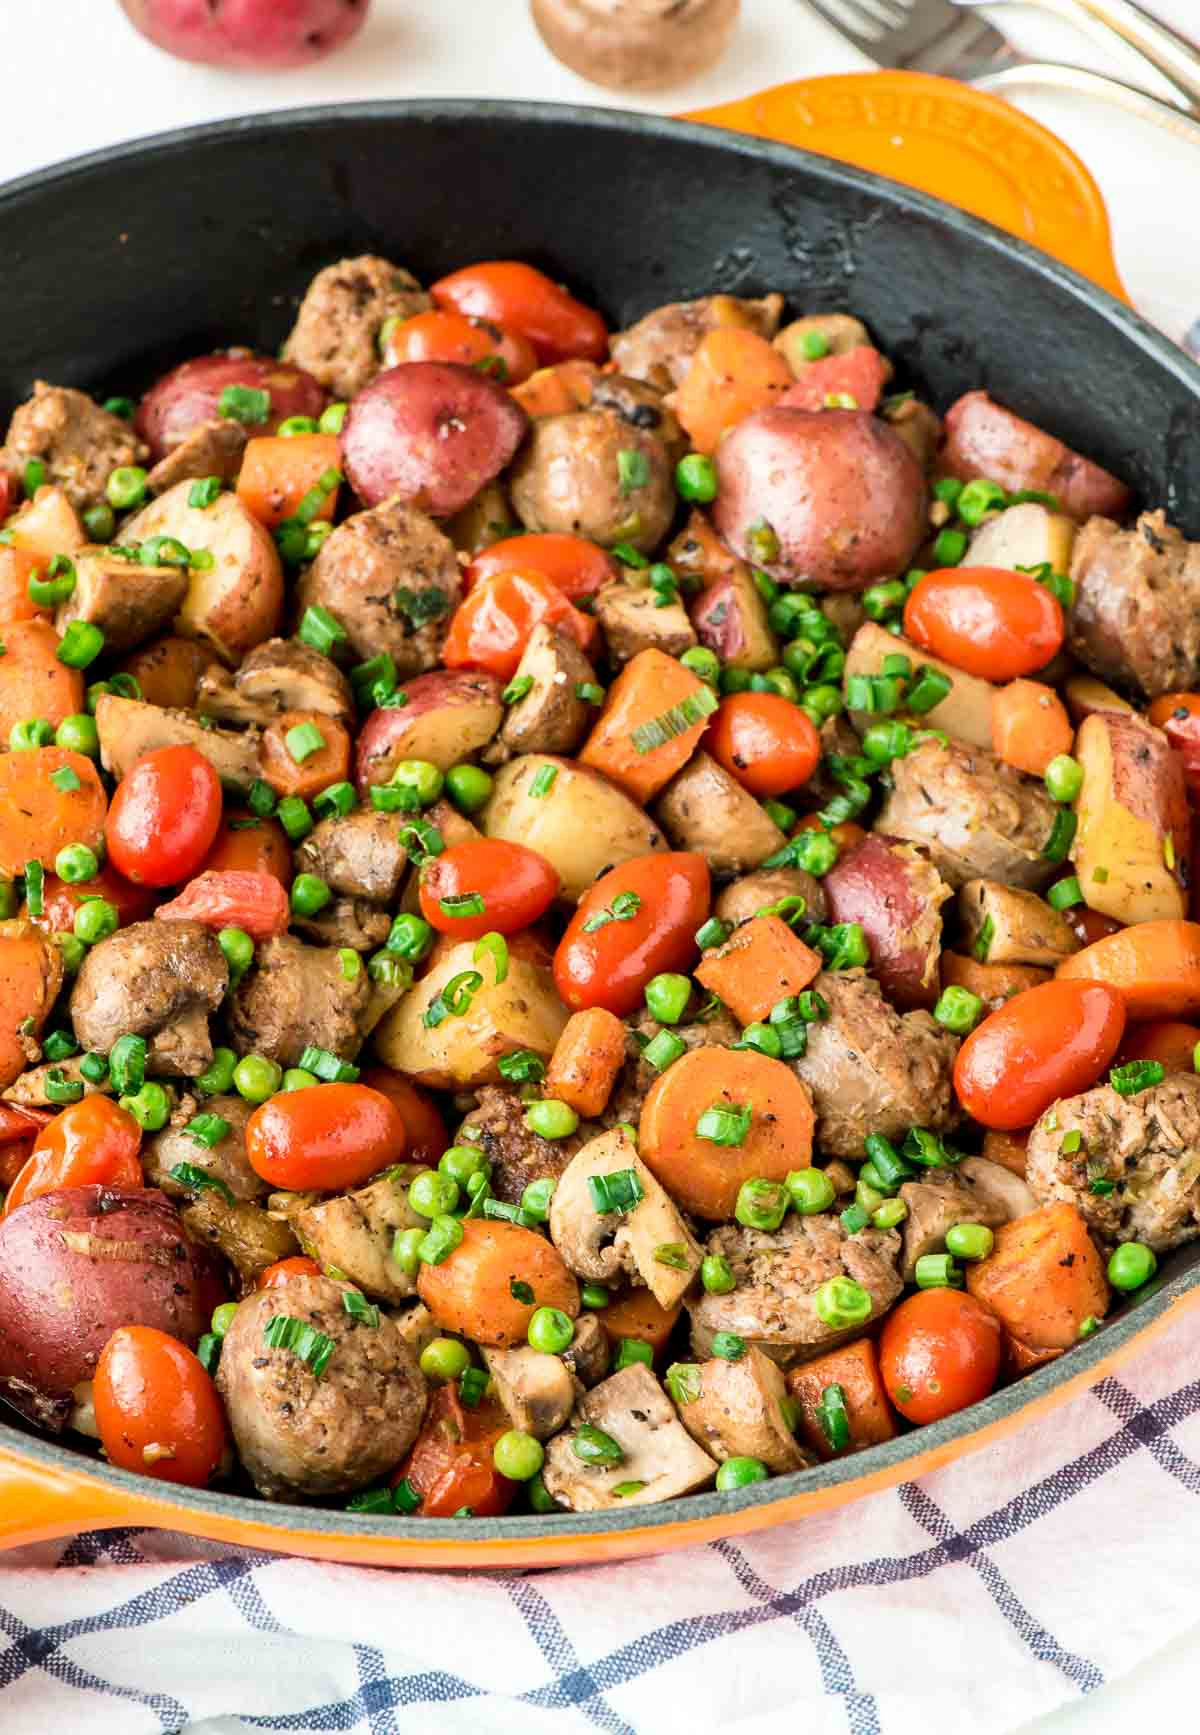 Sausage Dinner Ideas  Italian Sausage Skillet with Ve ables and Potatoes